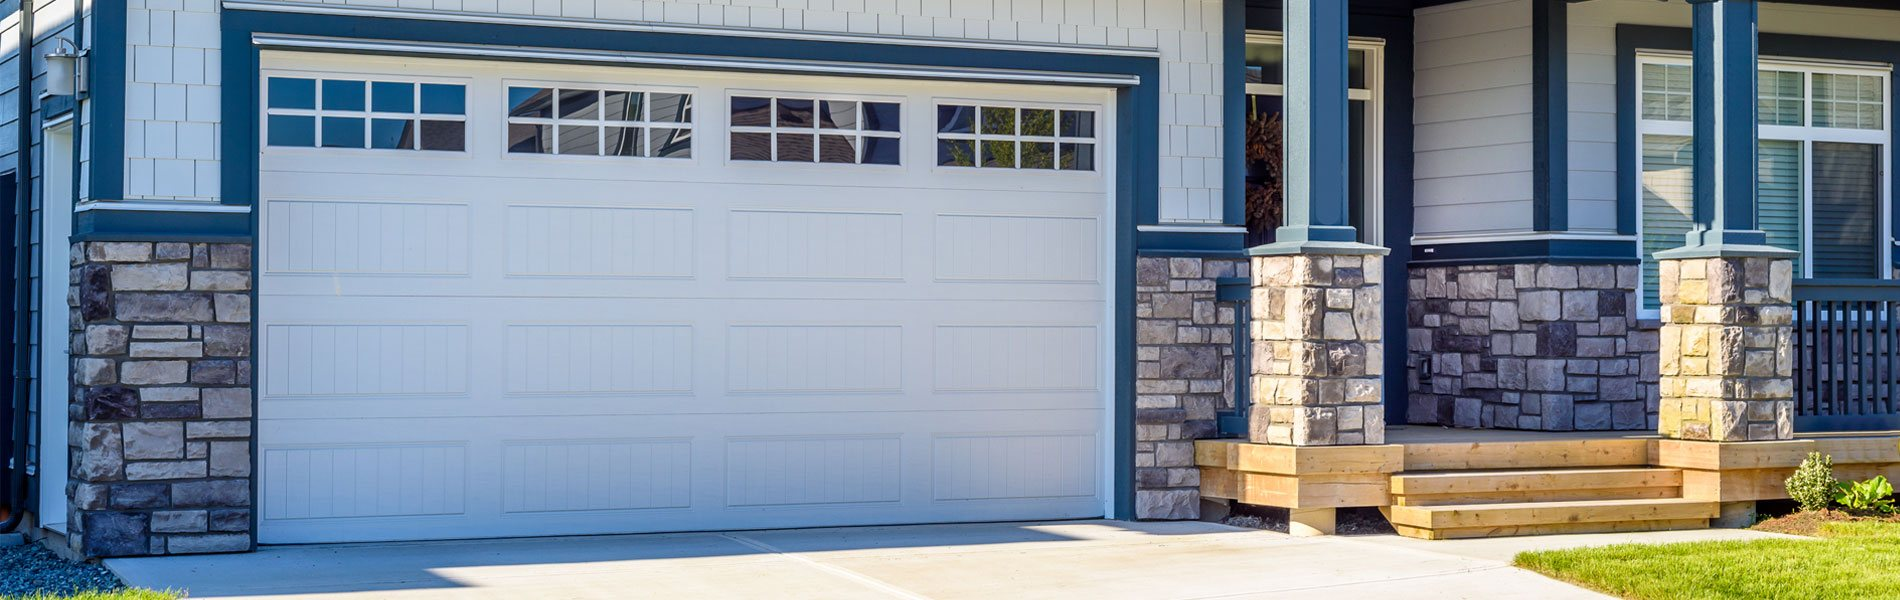 Neighborhood Garage Door Phoenix, AZ 844-282-1403